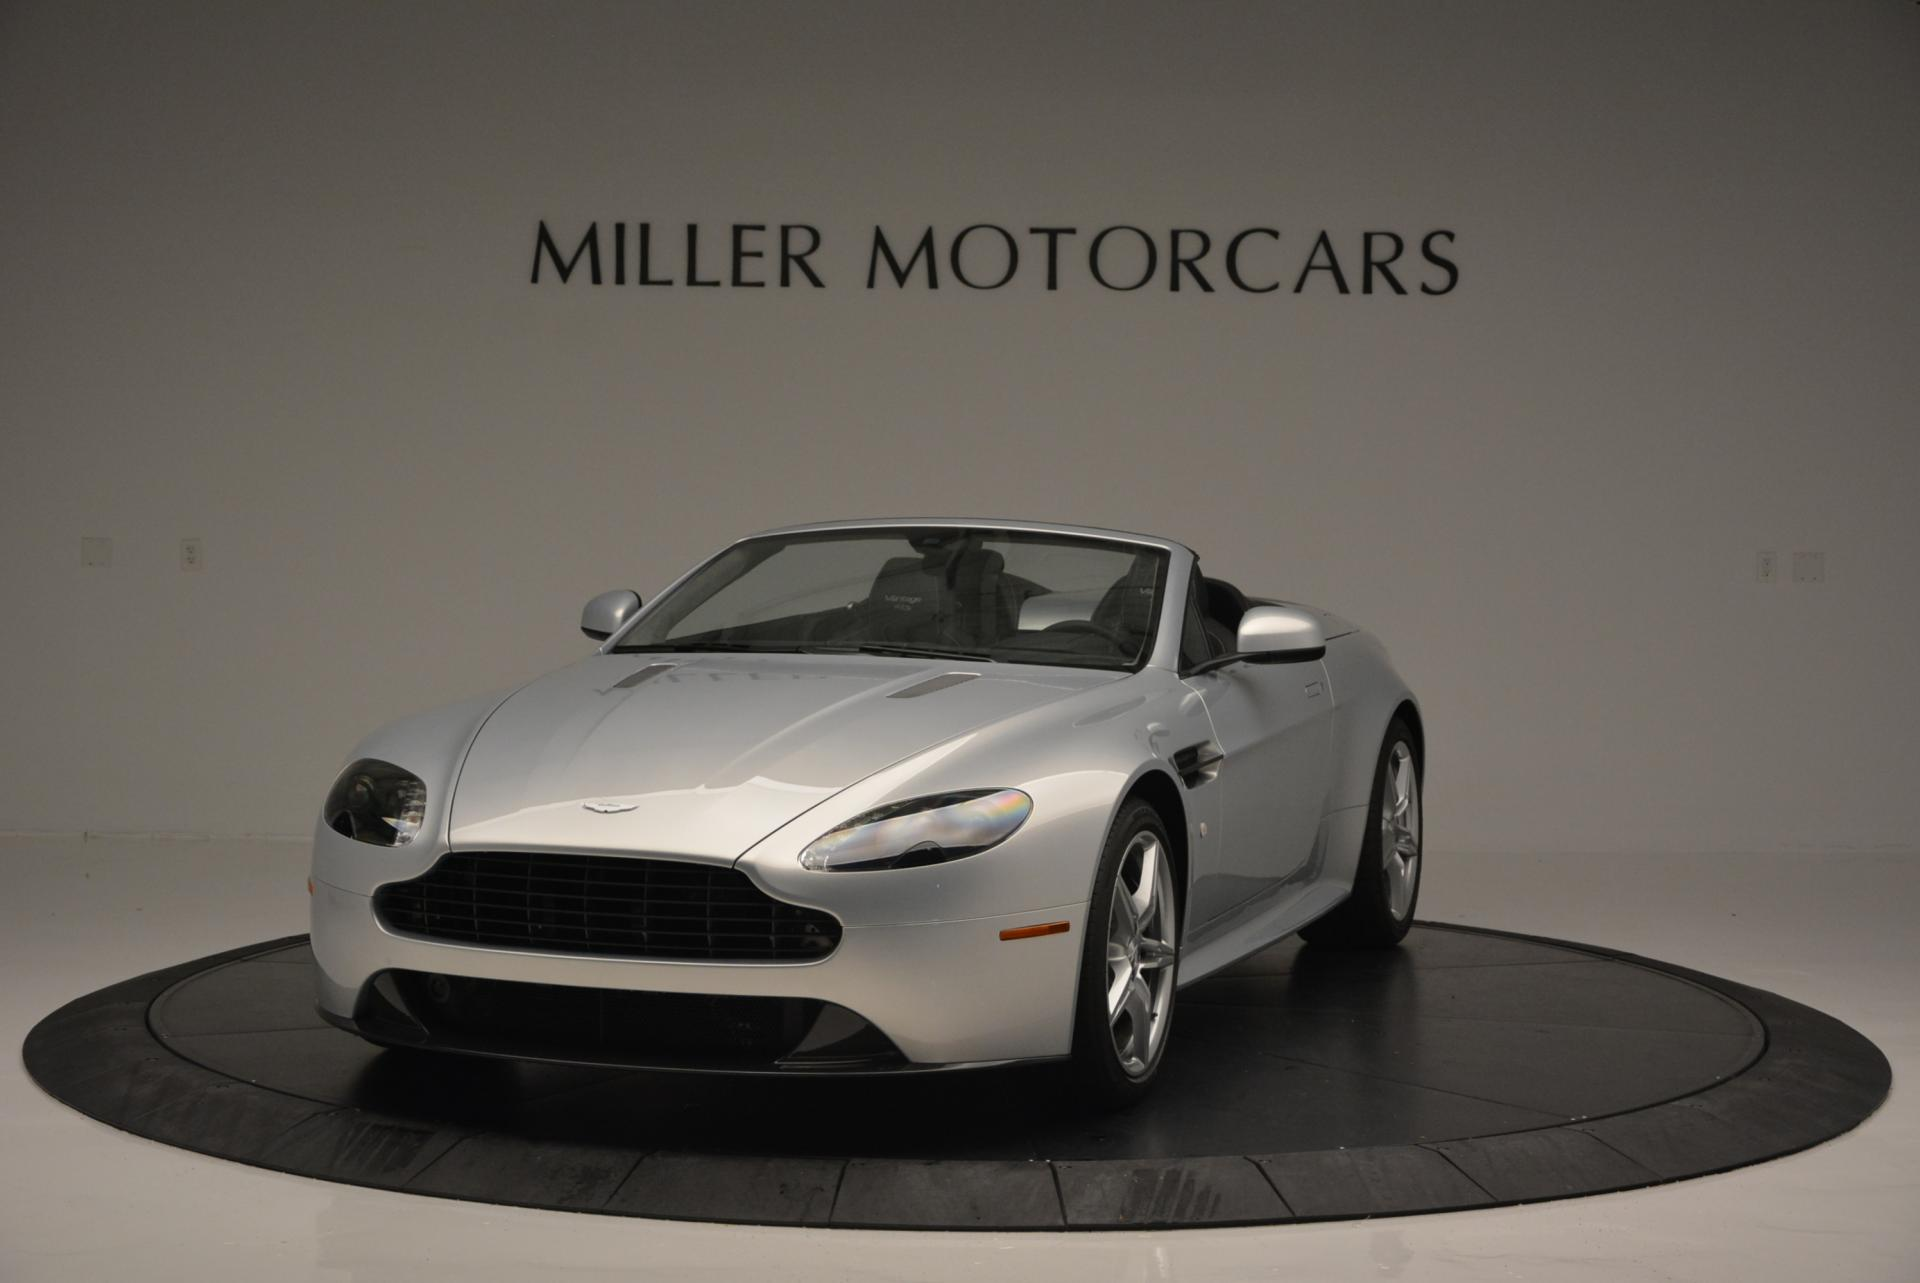 New 2016 Aston Martin V8 Vantage GTS Roadster For Sale In Westport, CT 90_main